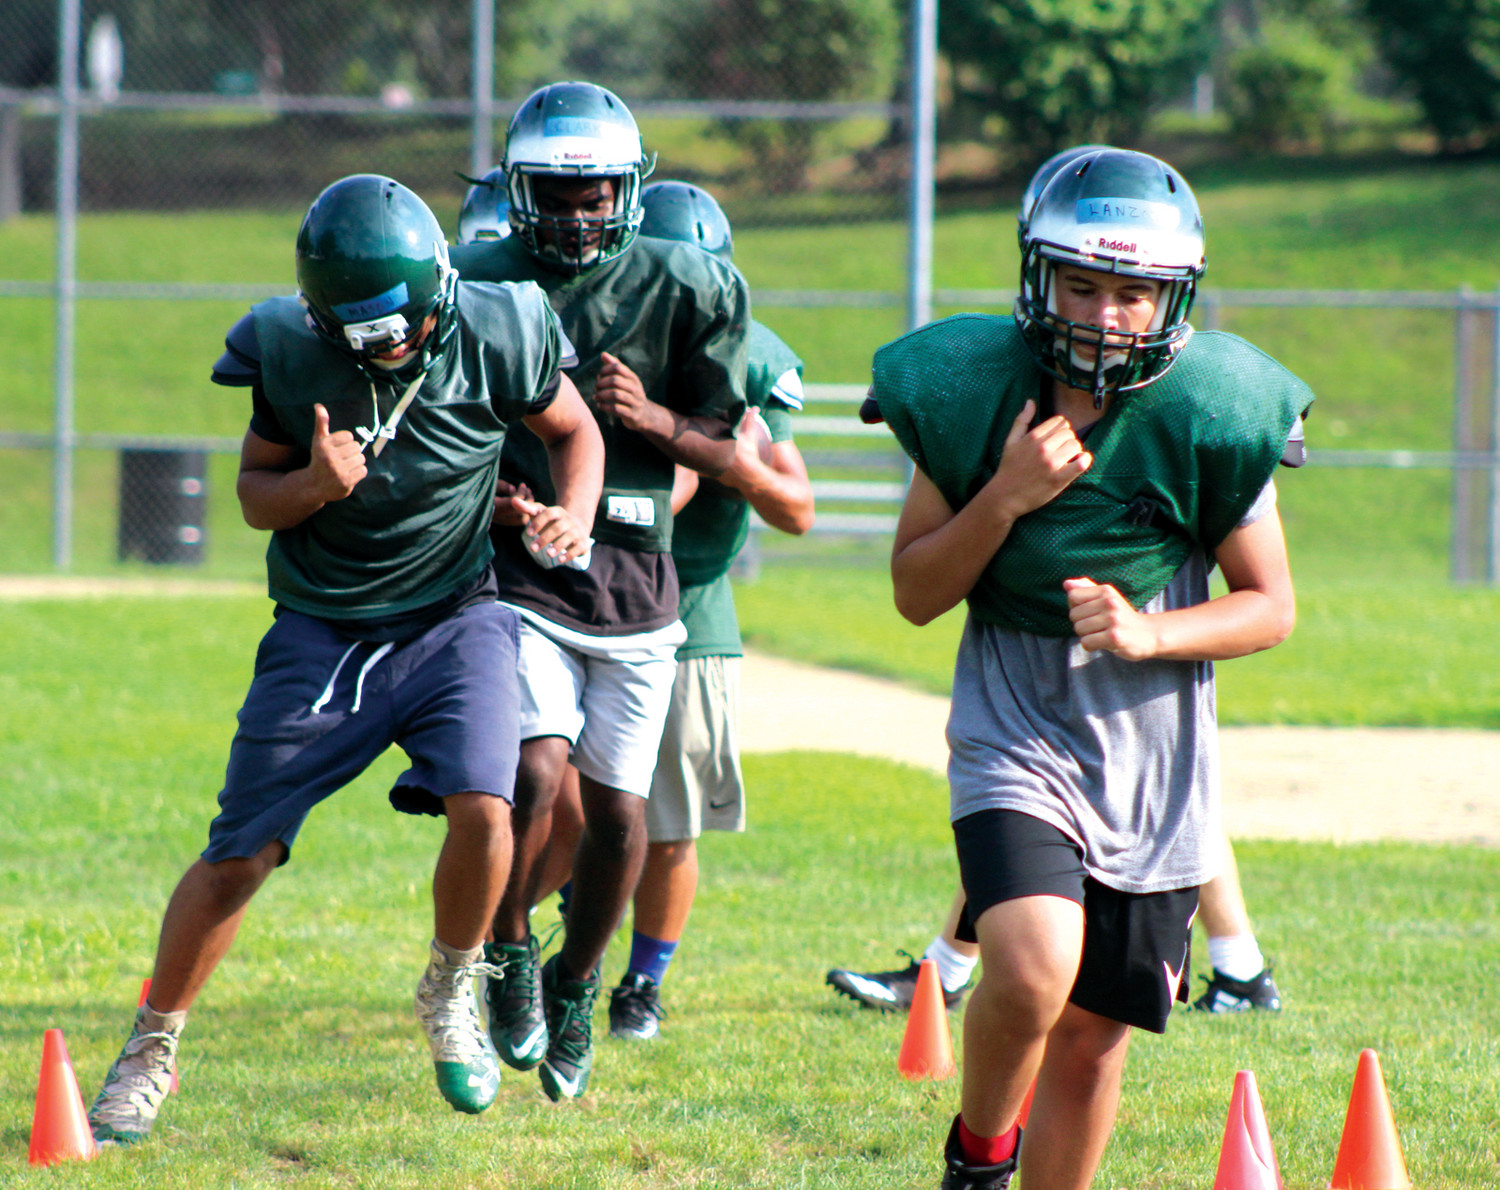 DOG DAYS OF CAMP: Running backs from the Cranston East football team run through ball security drills during a practice at the team's preseason training camp at the fields at Bain Middle School.